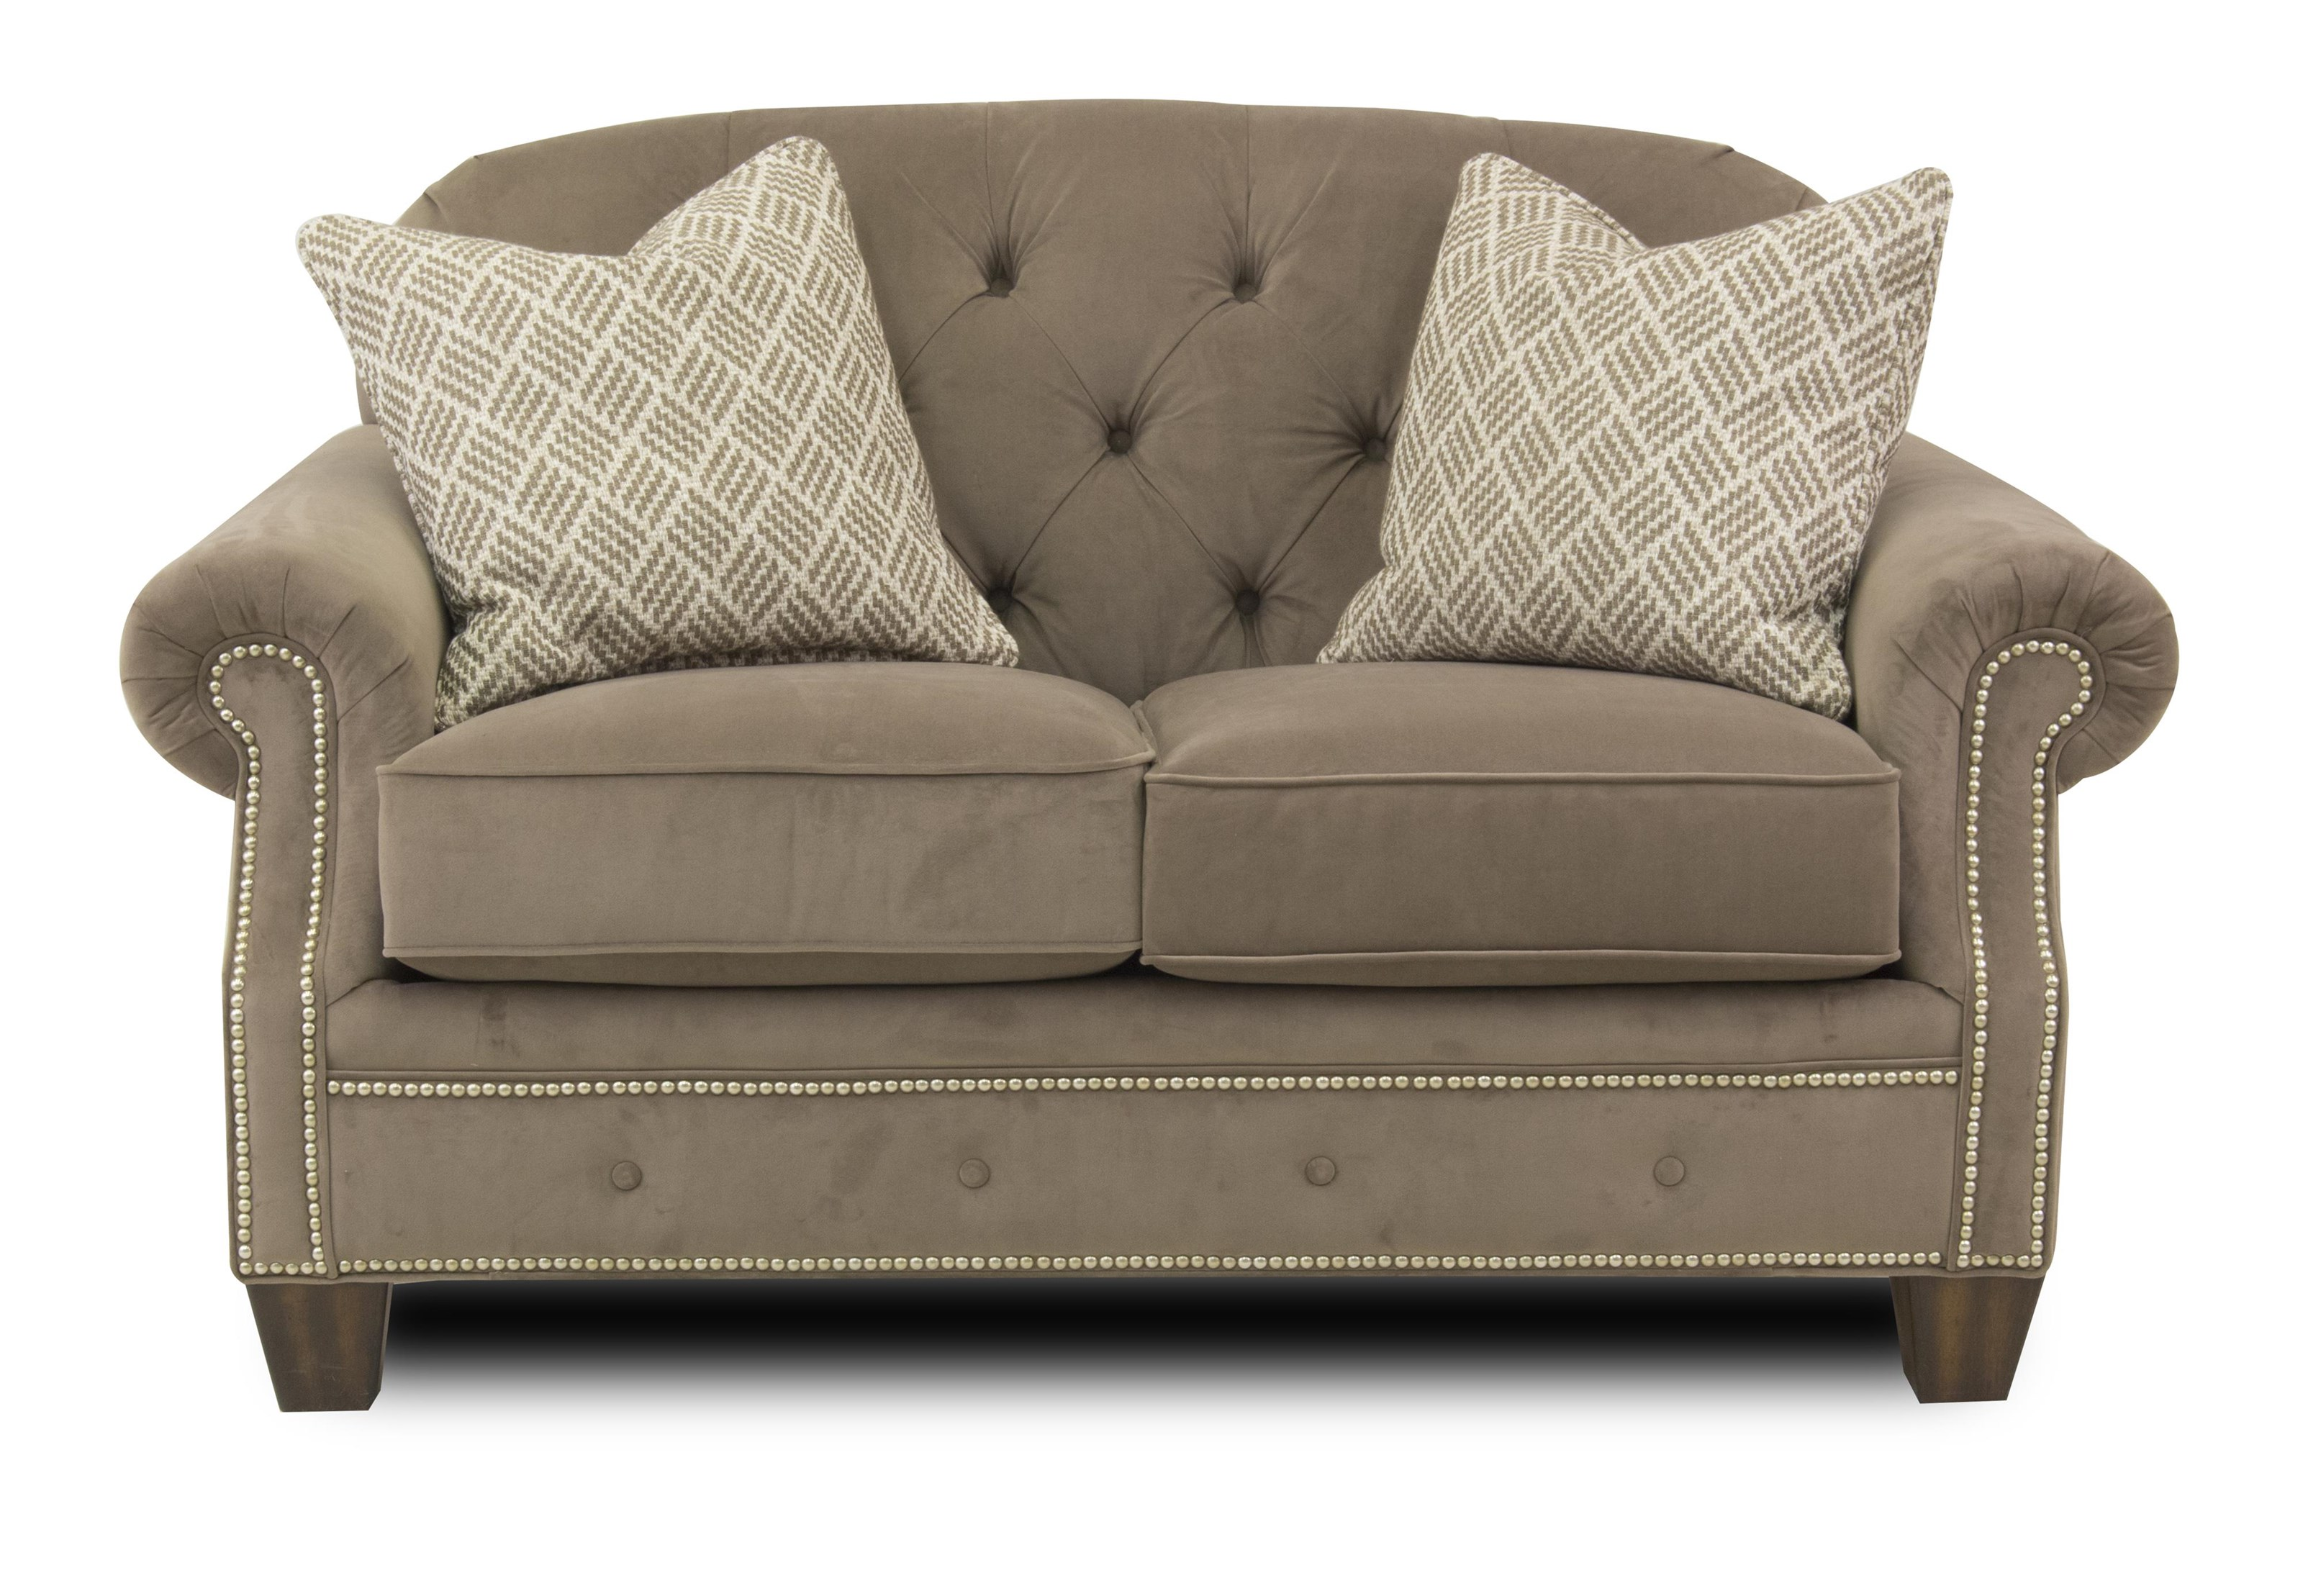 Transitional Button-Tufted Loveseat with Rolled Arms and Nailheads